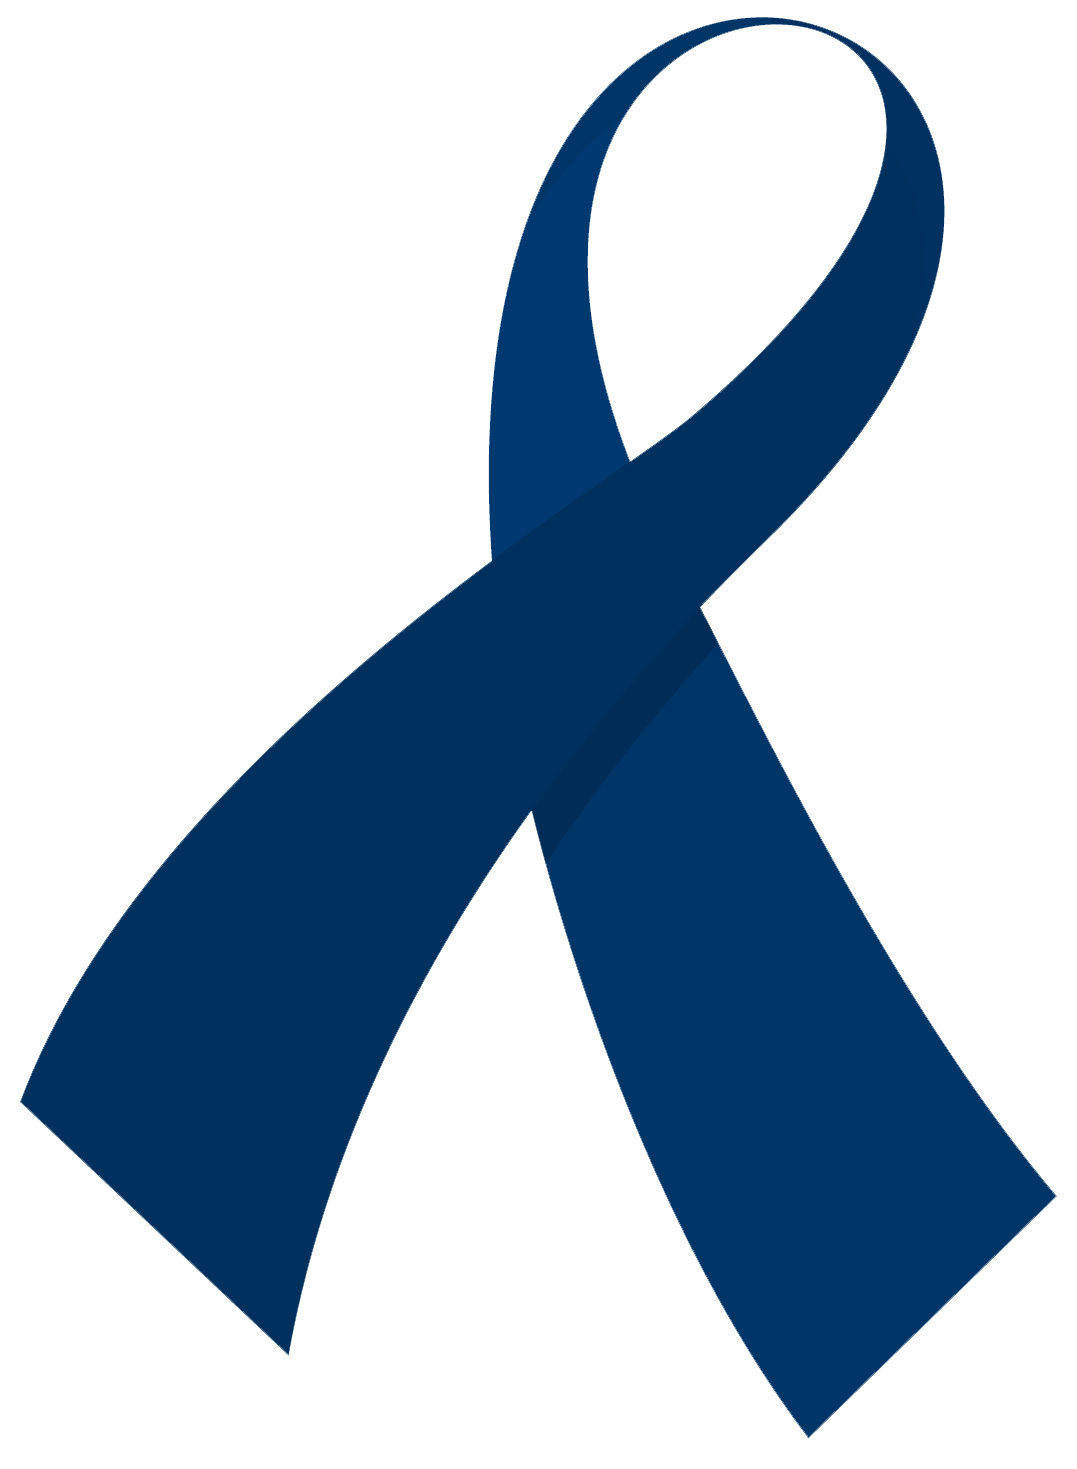 Blue Prostrate Cancer Ribbon Clip Art.